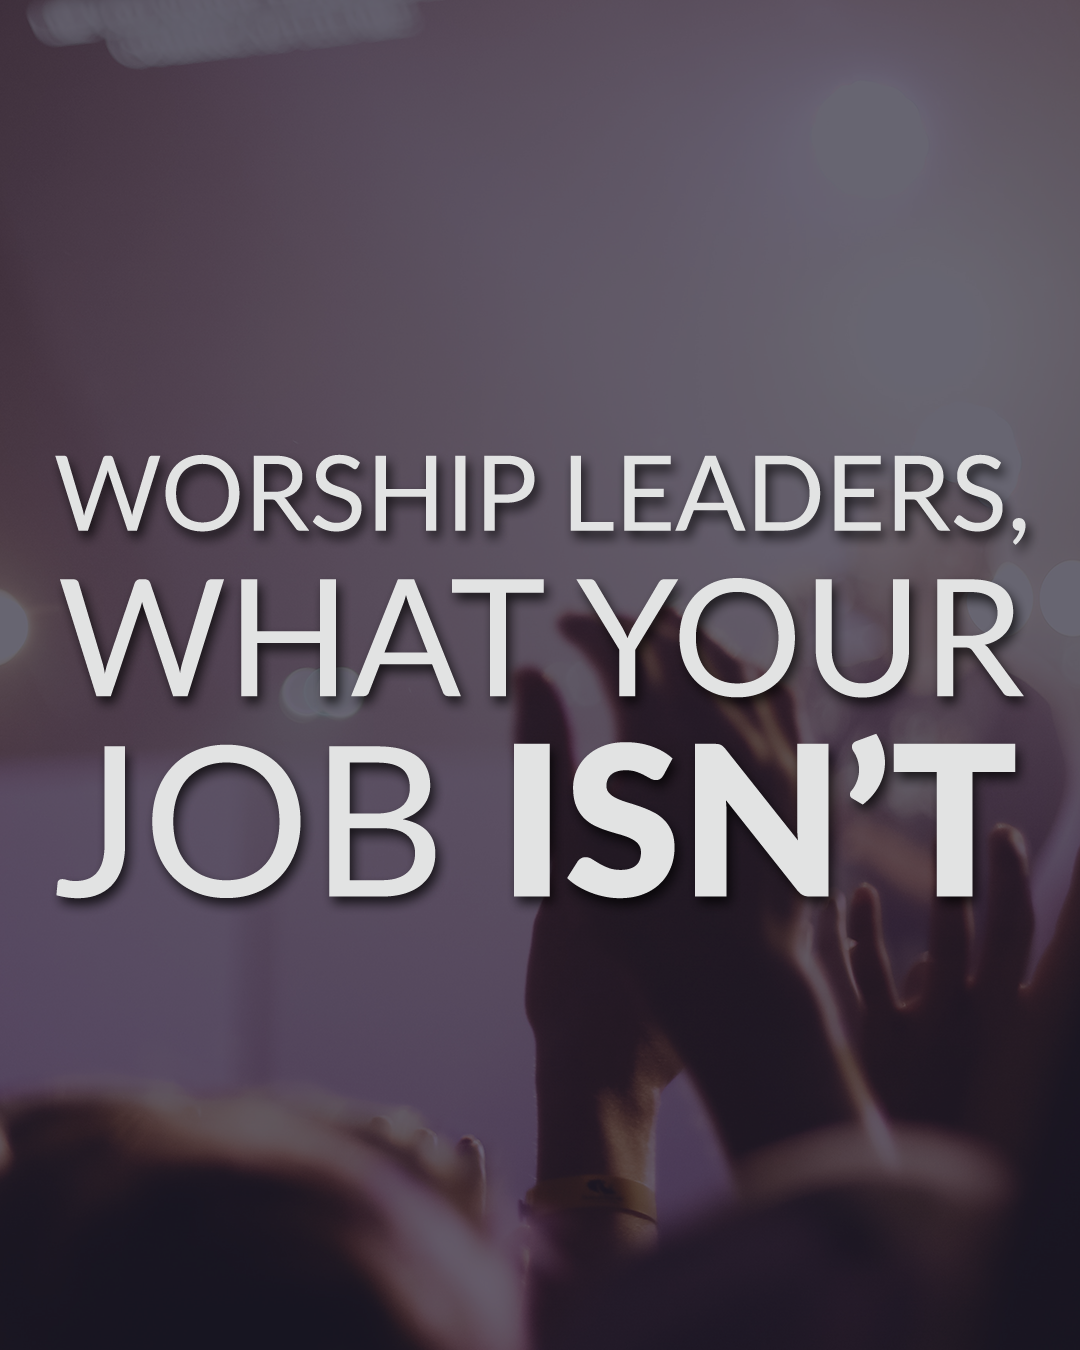 worship leaders what your job isnt